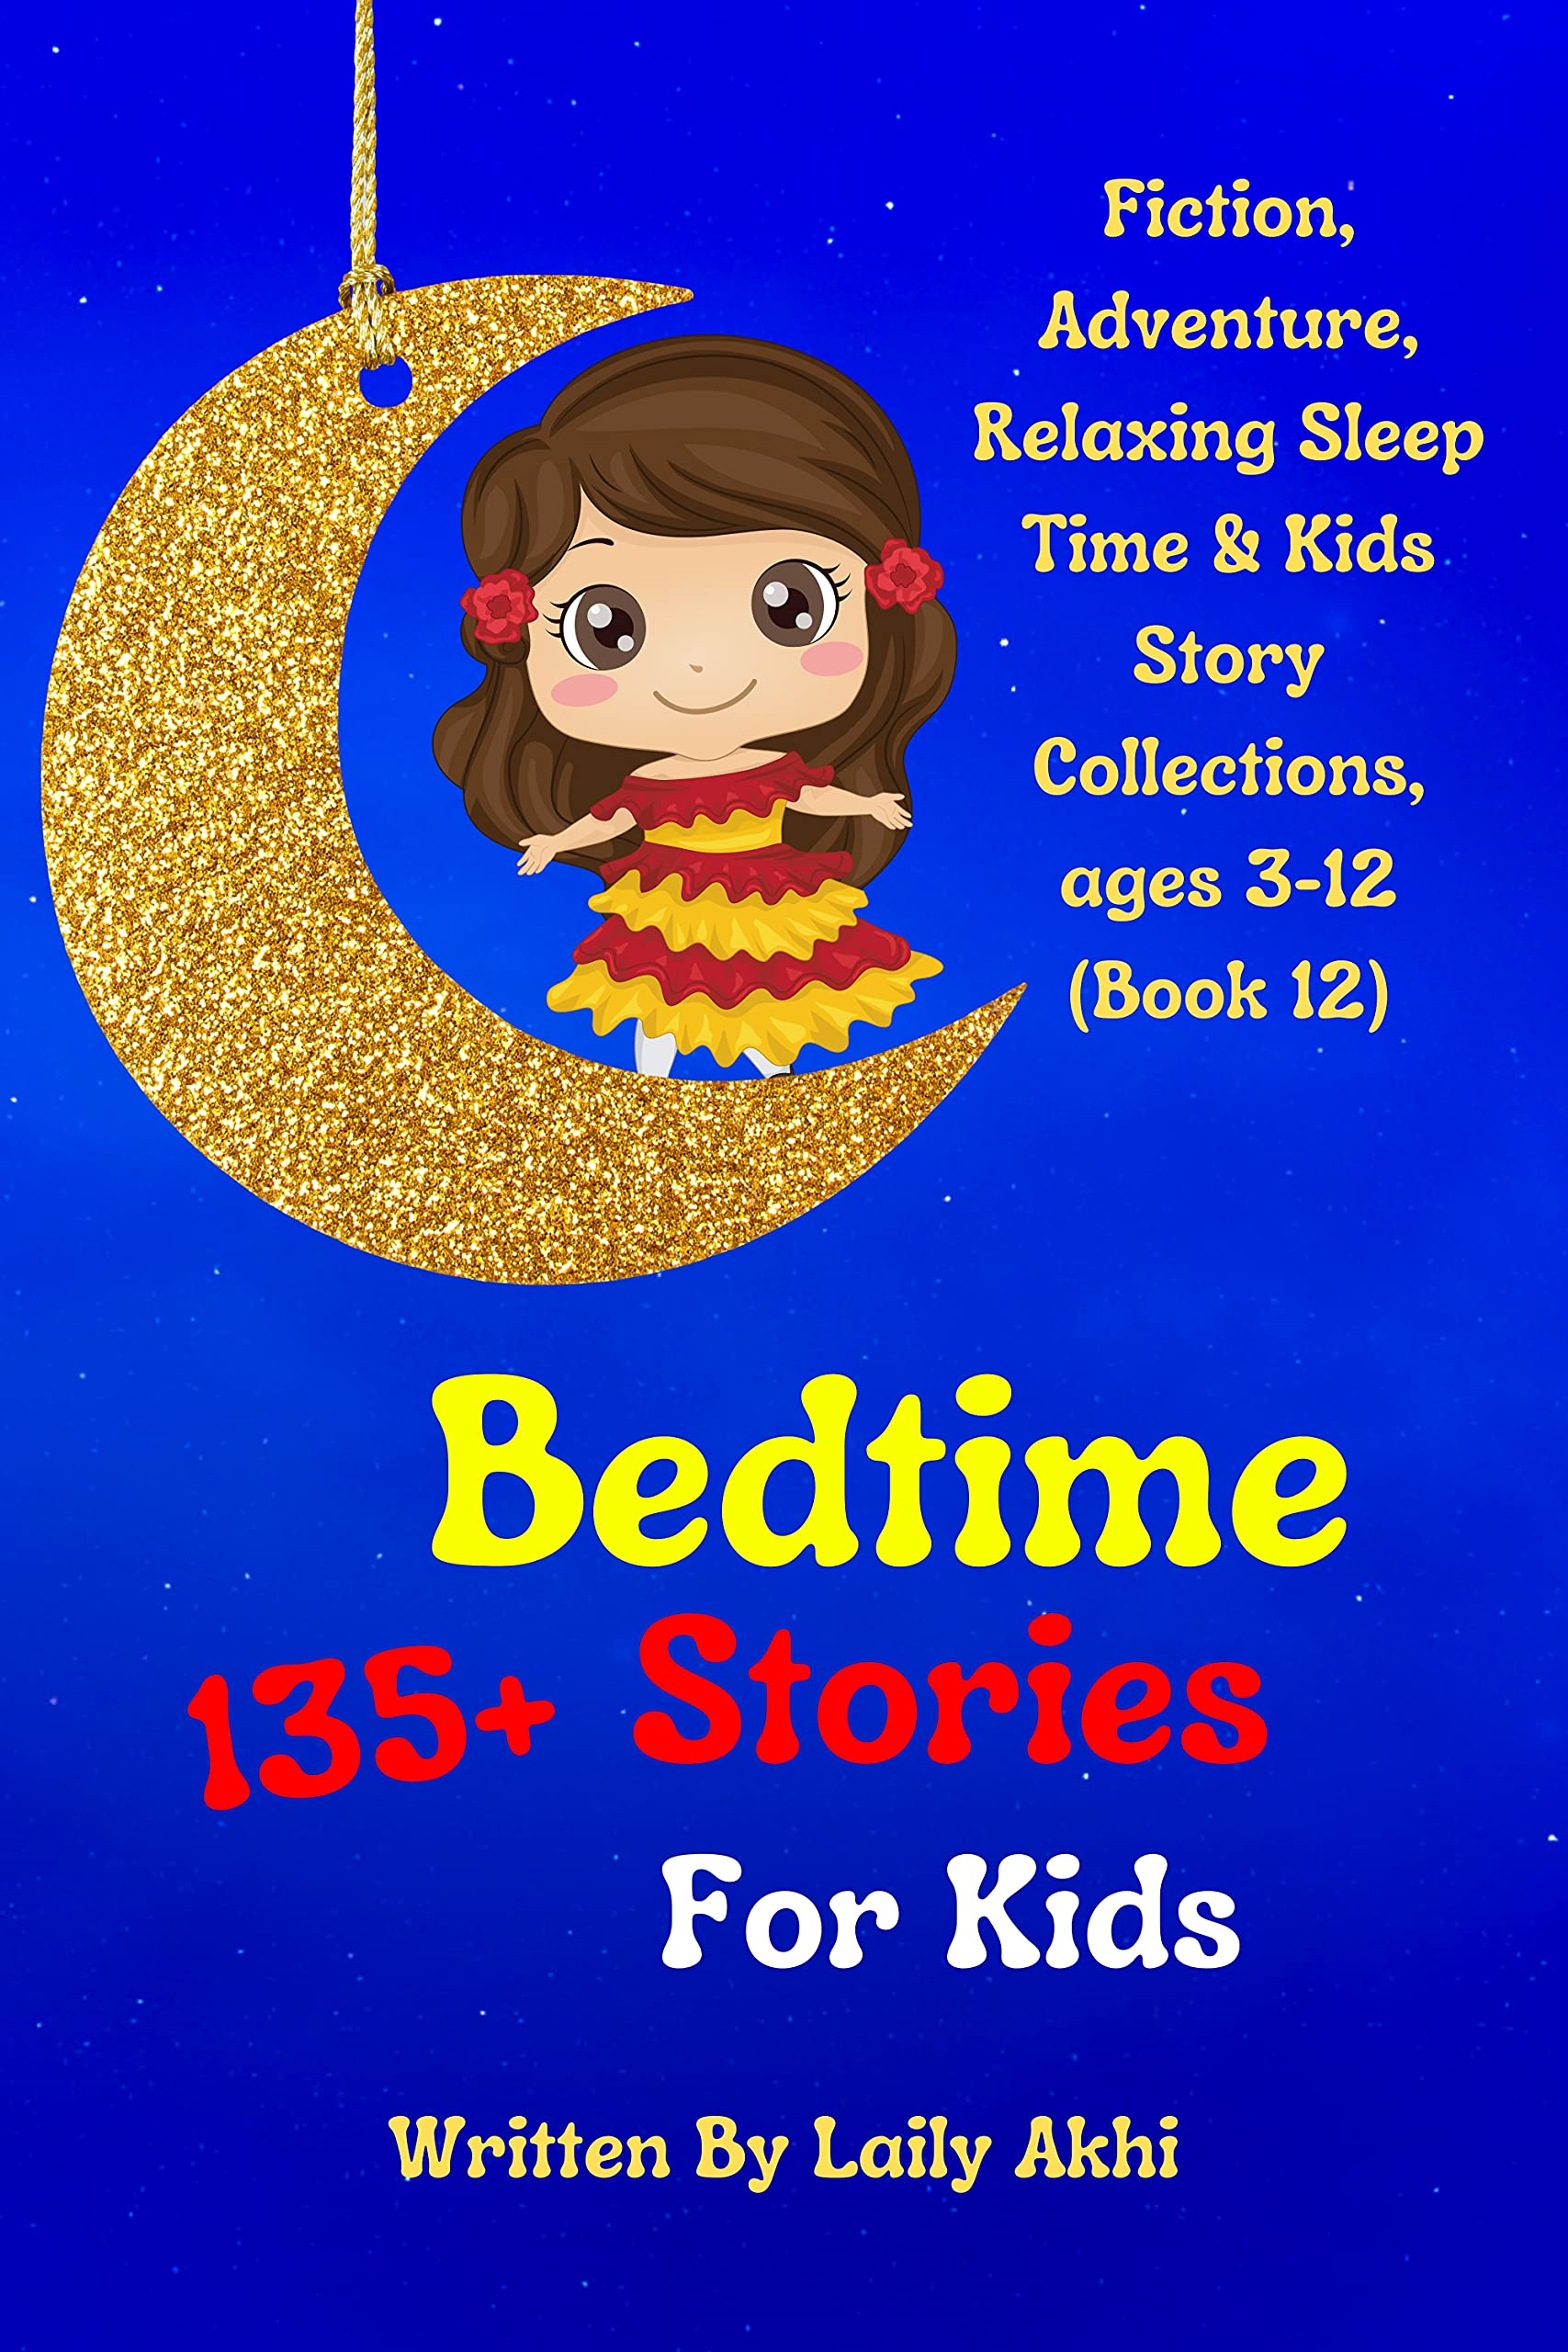 Bedtime Stories For Kids: 135+ Fiction, Adventure, Relaxing Sleep Time & Kids Story Collections, ages 3-12 (Book 12)